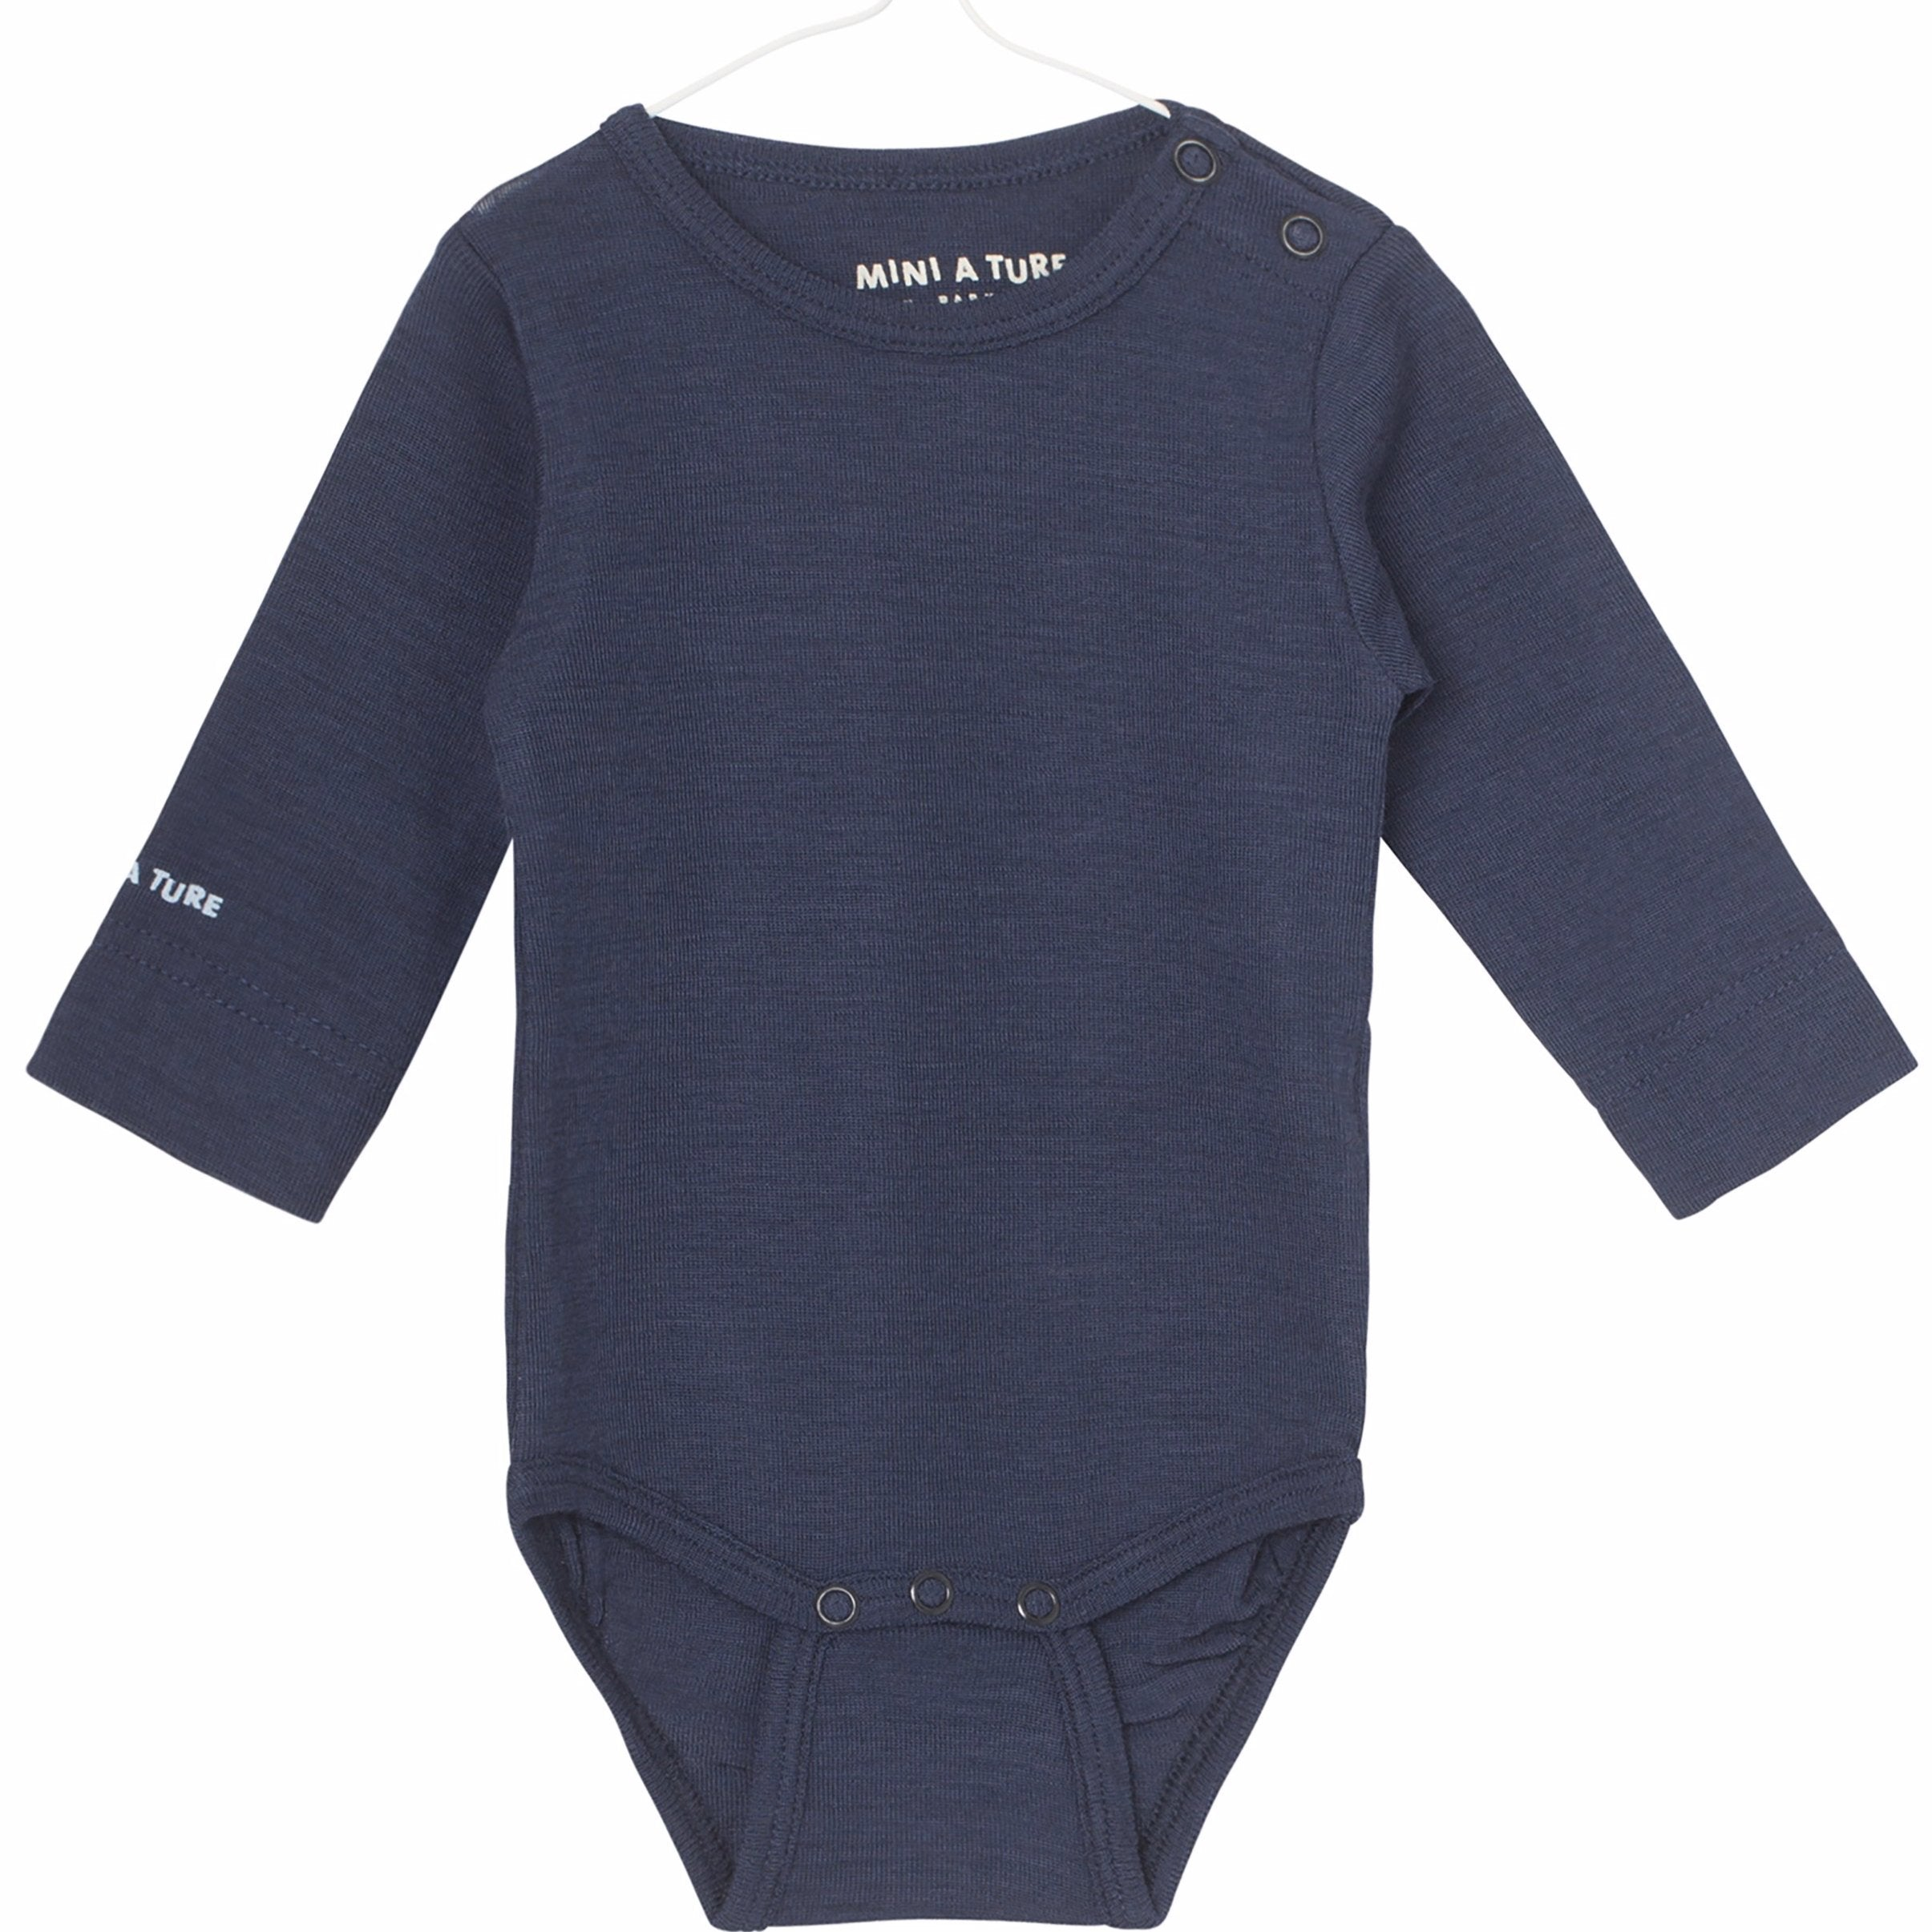 Image of   Mini A Ture - Body LS, Ellis - Mood Indigo (Basis)